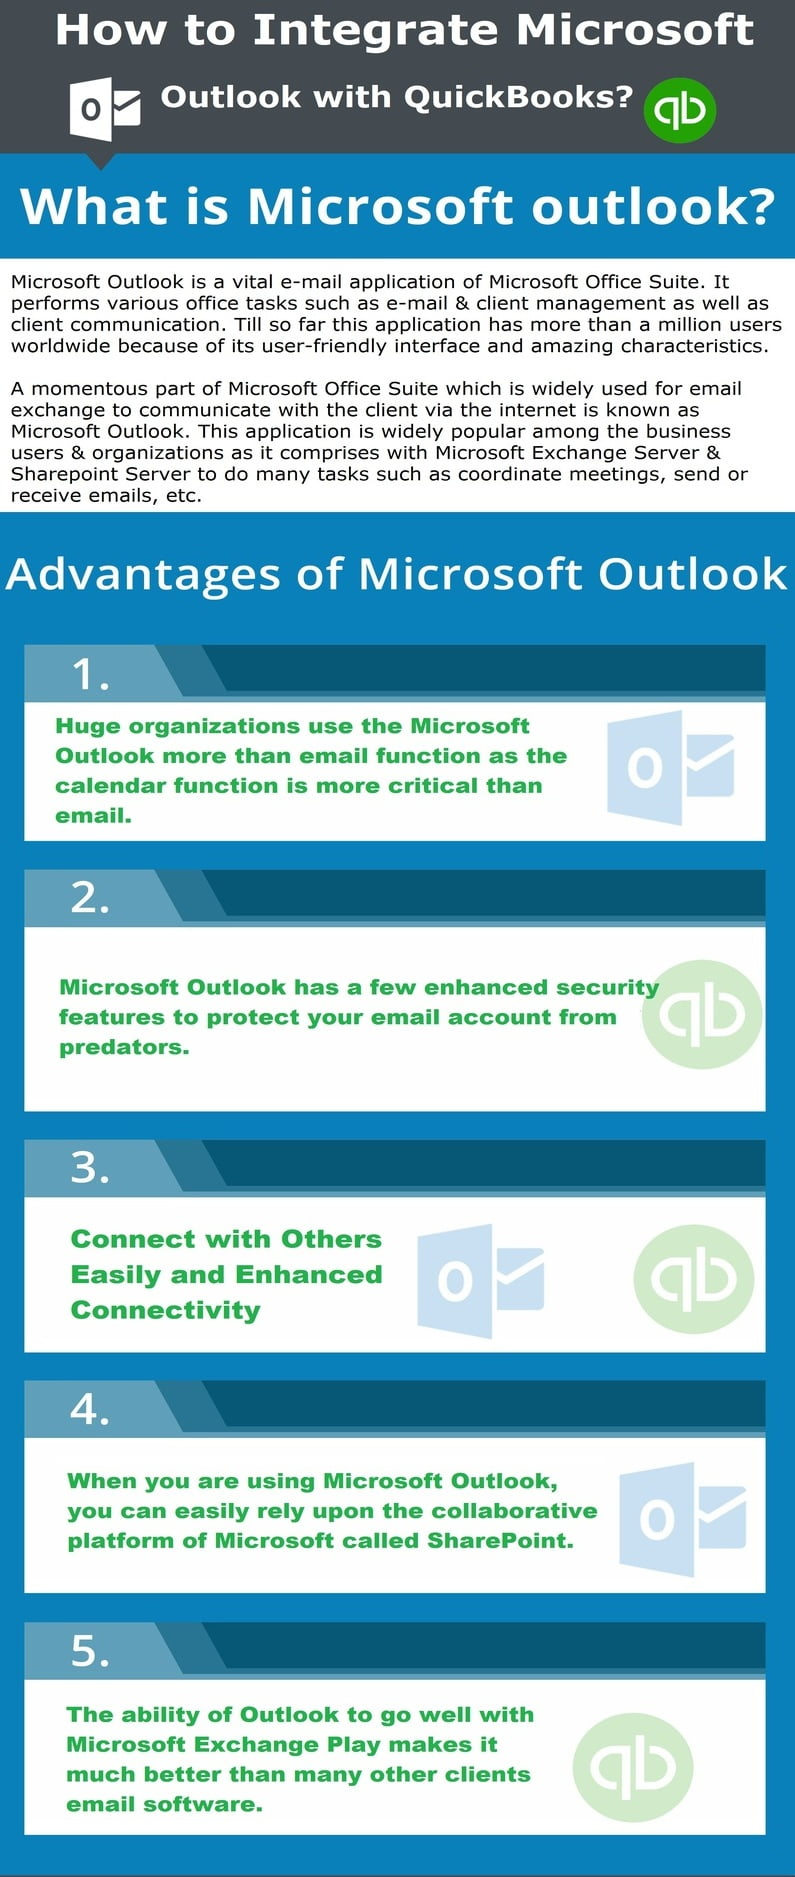 Microsoft Outlook Email Integration with QuickBooks - Infographic